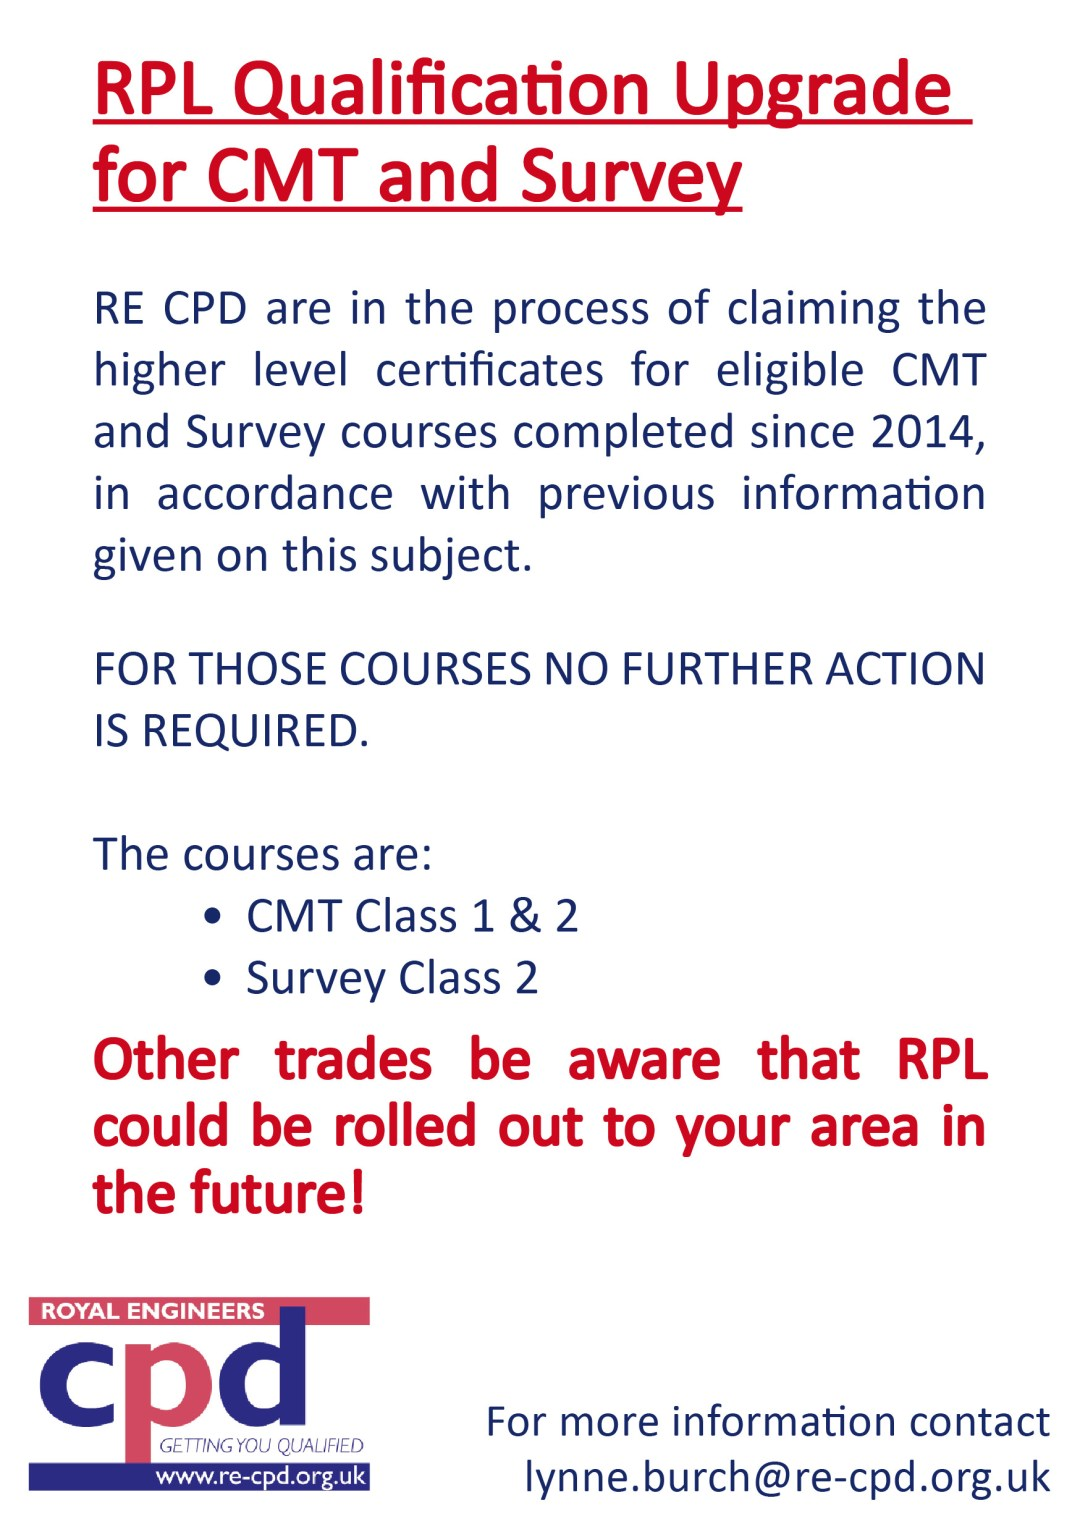 Latest Update for RPL Qualification